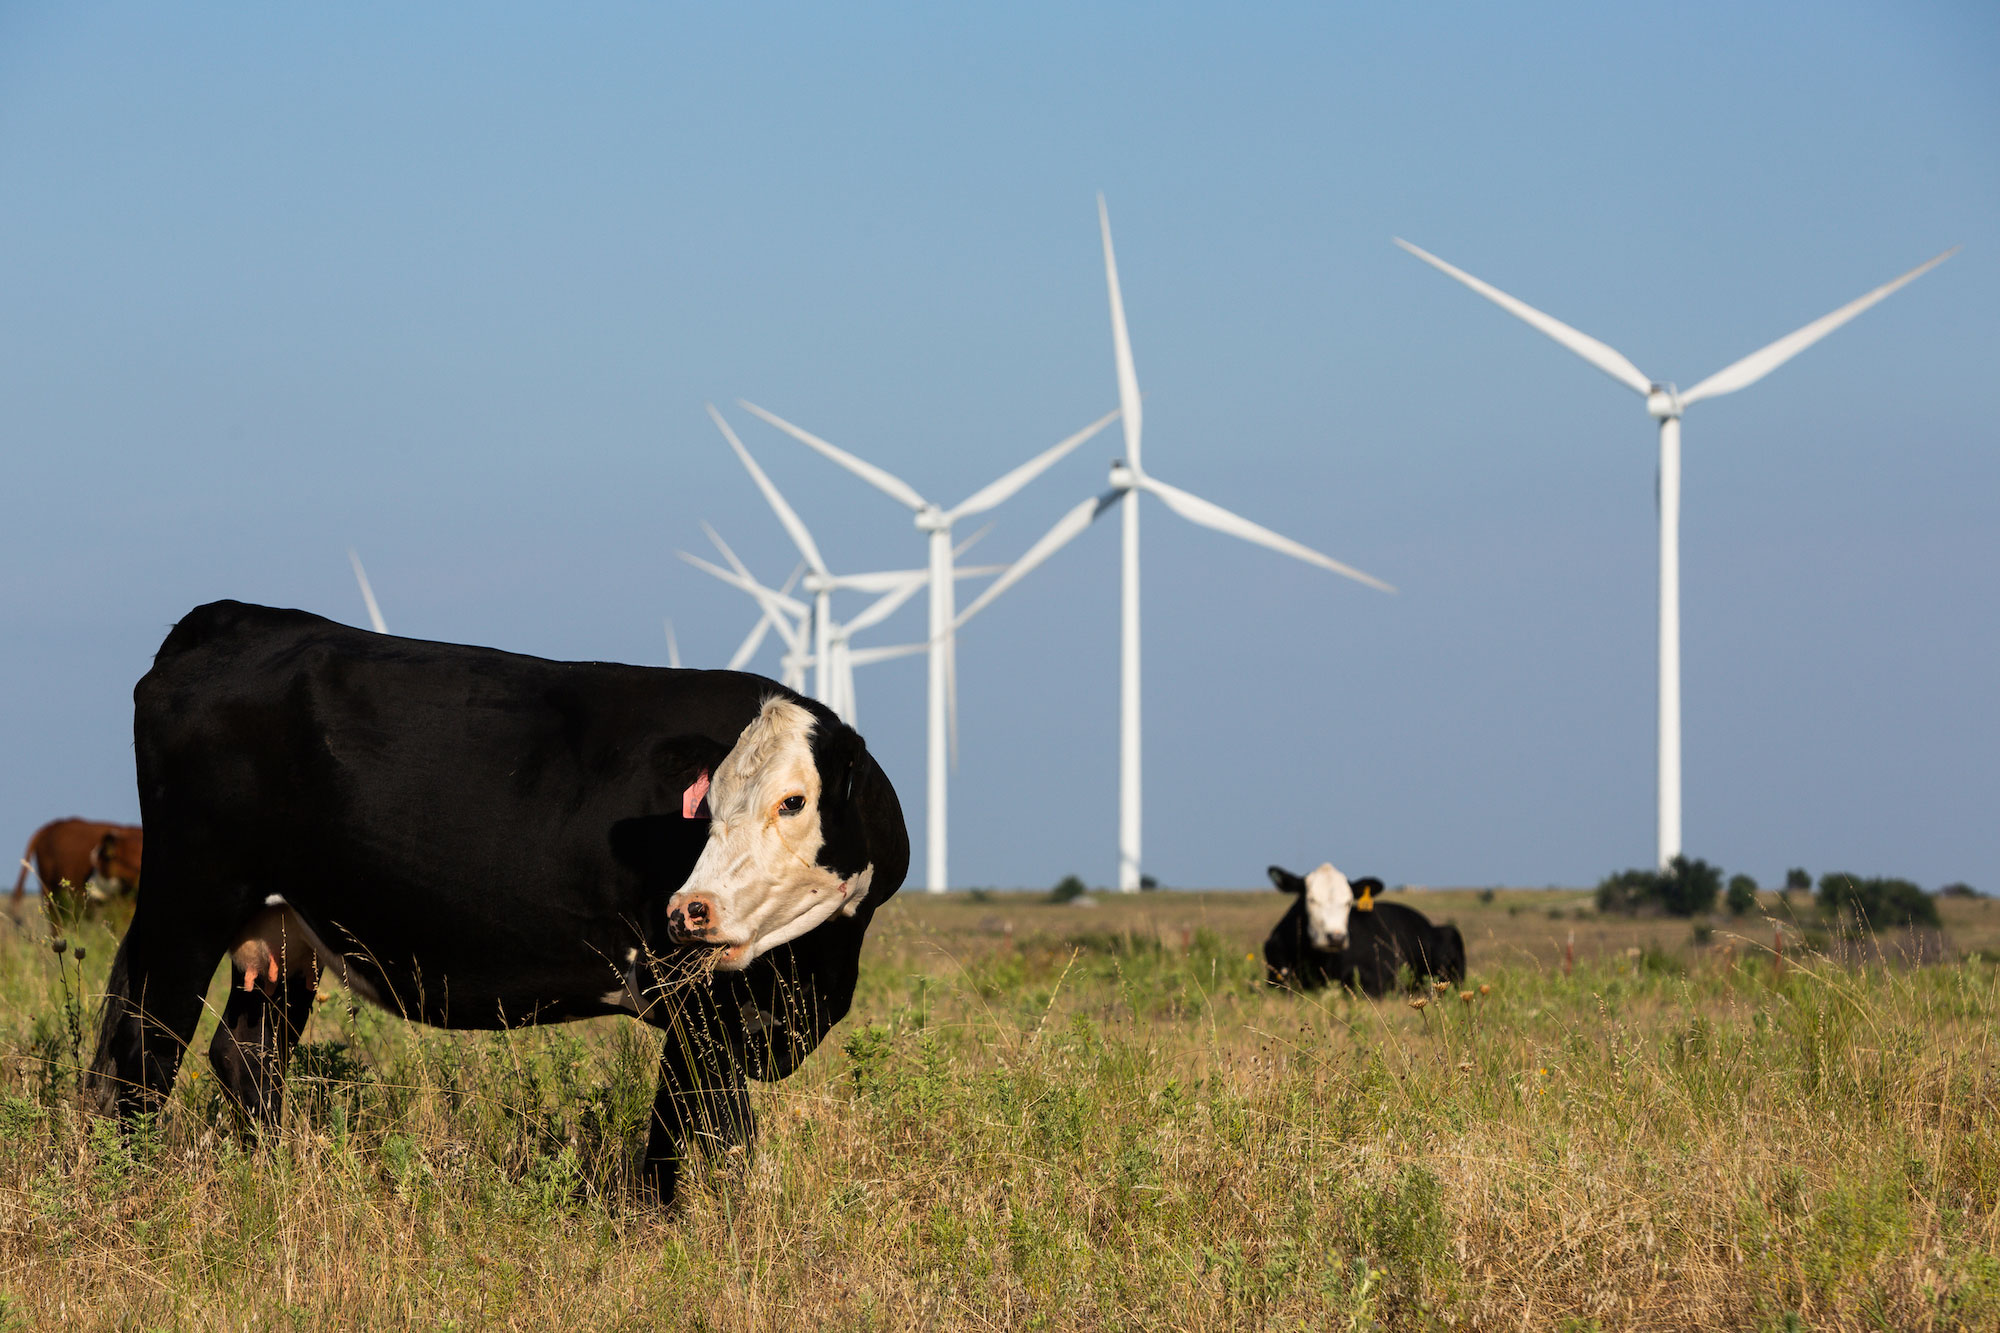 Cattle grazing in pasture with windmill in the background.